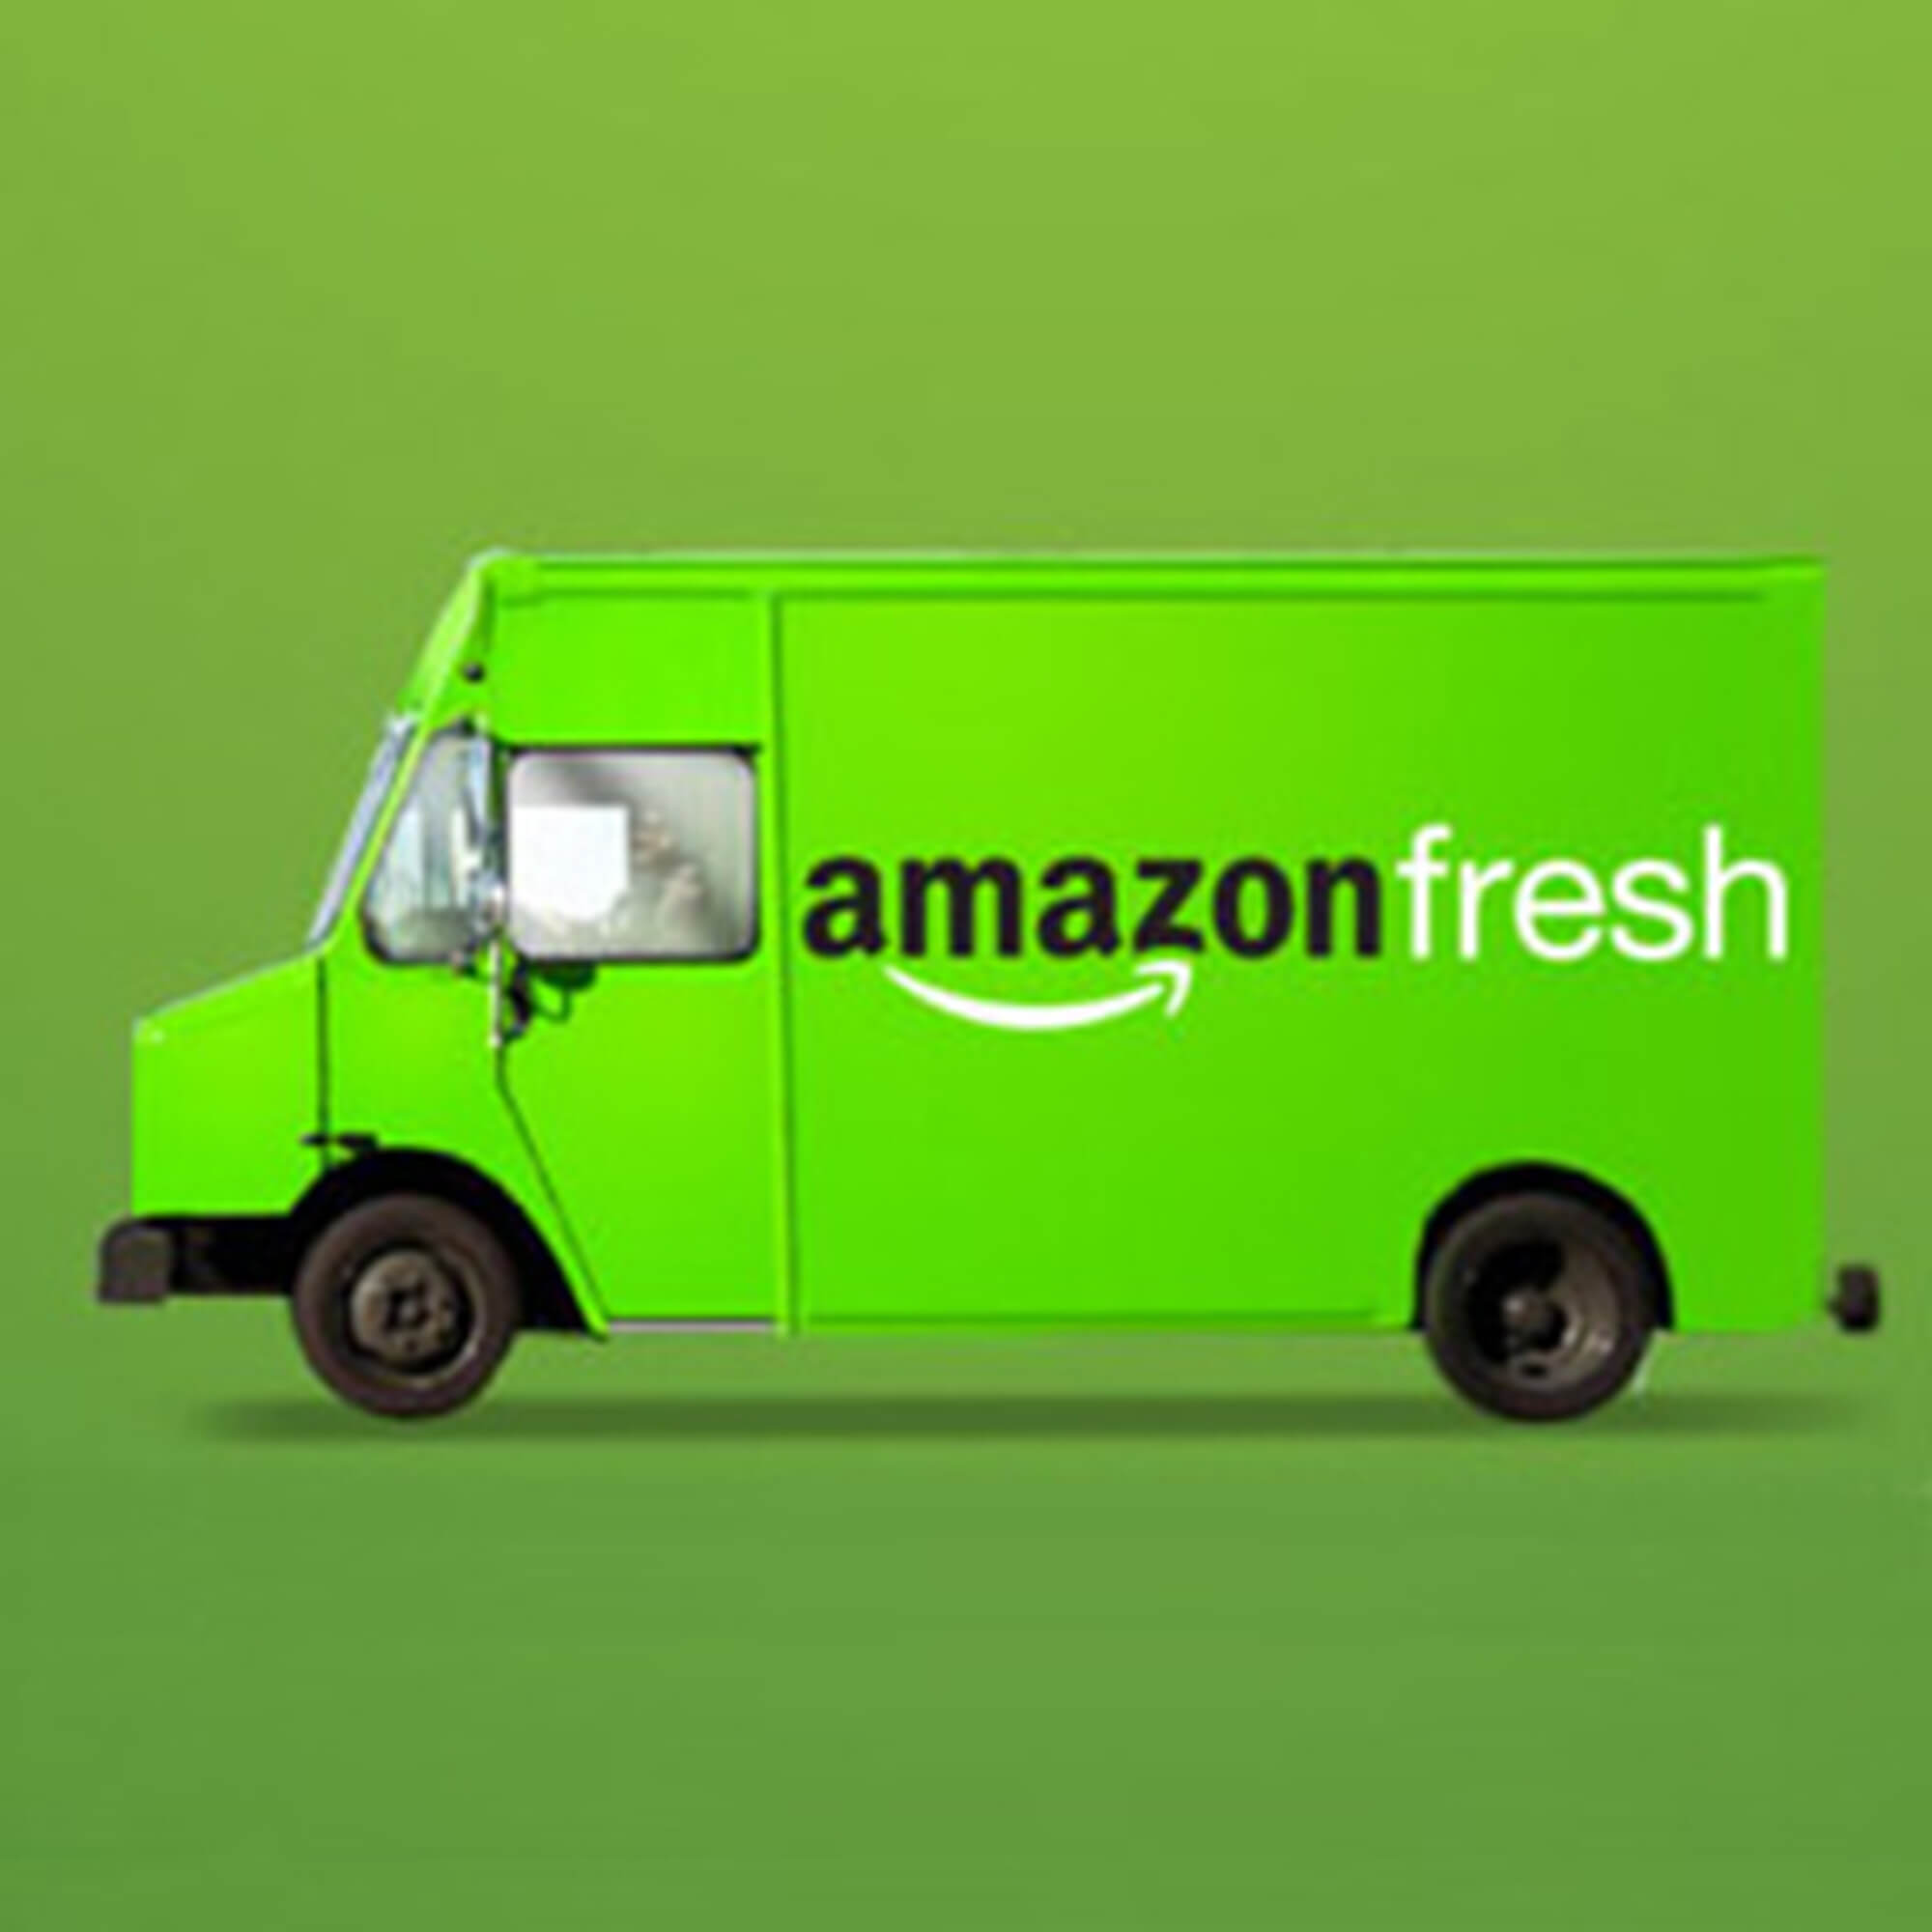 See my work on Amazon Fresh